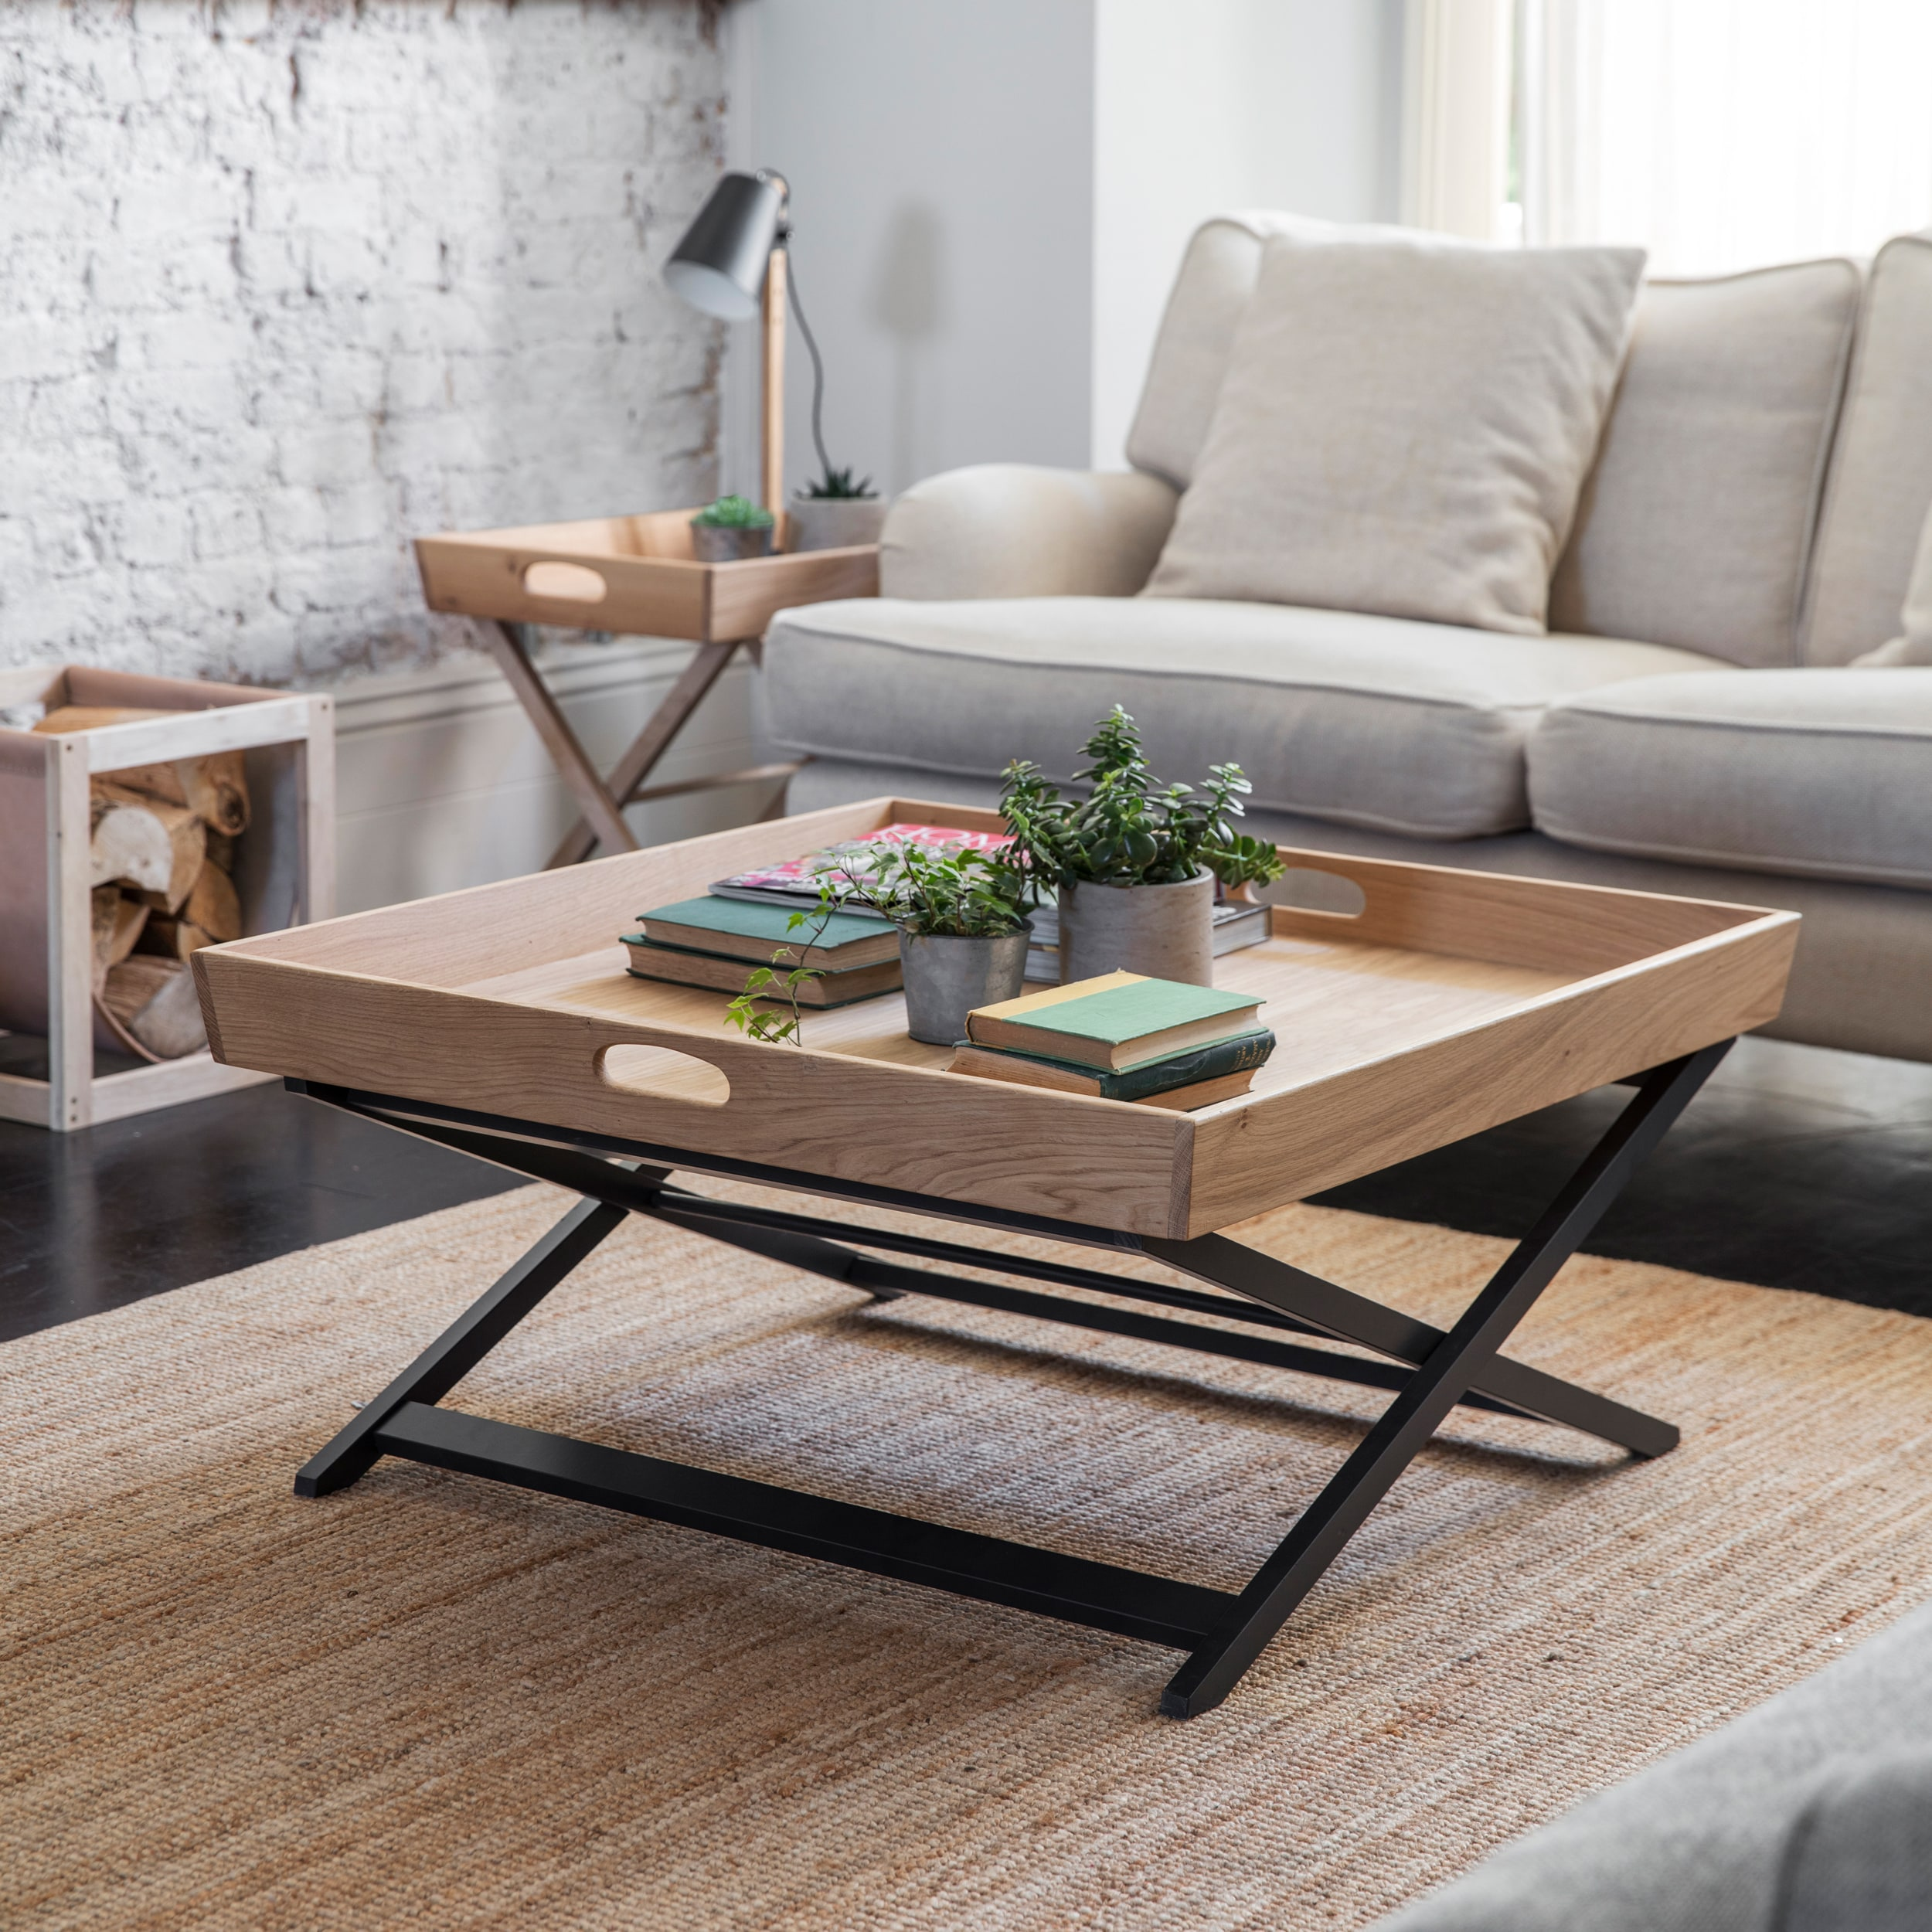 Oak Butlers Coffee Table Square in Black   Garden Trading